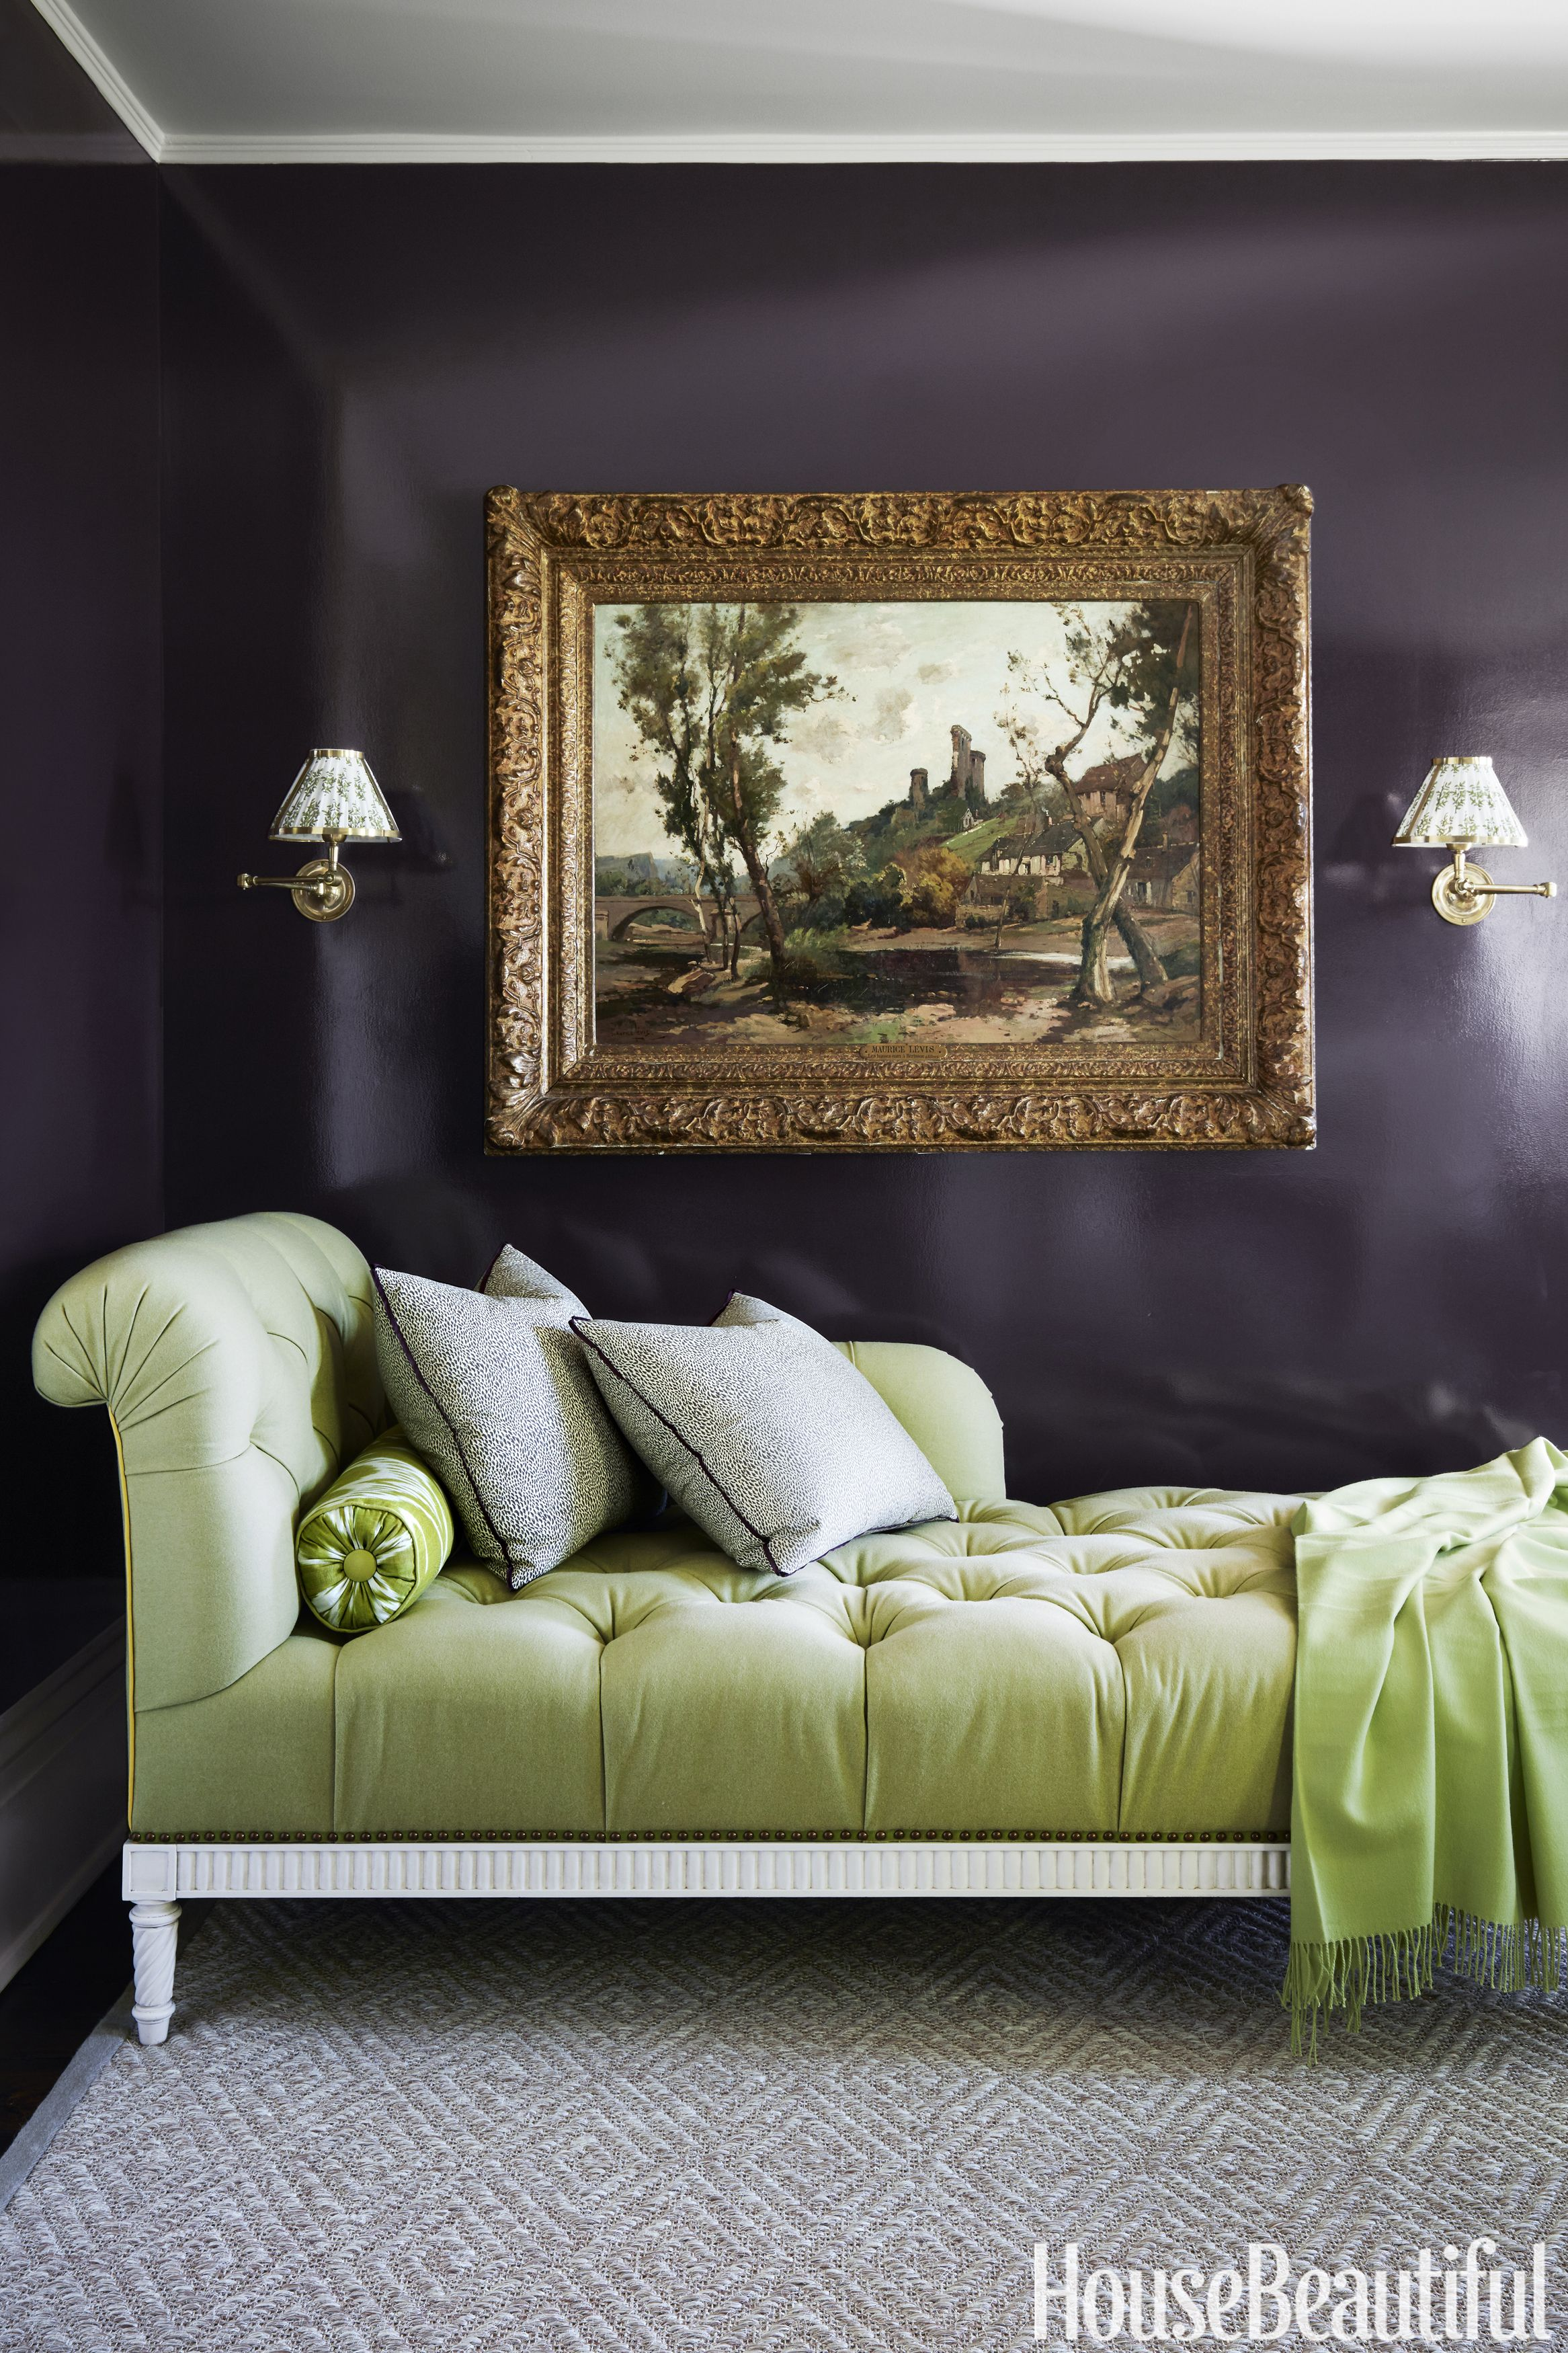 Ashley Whittaker Simple Inside A Colorful Farmhouse  Ashley Whittaker Designs An 1823 Decorating Design